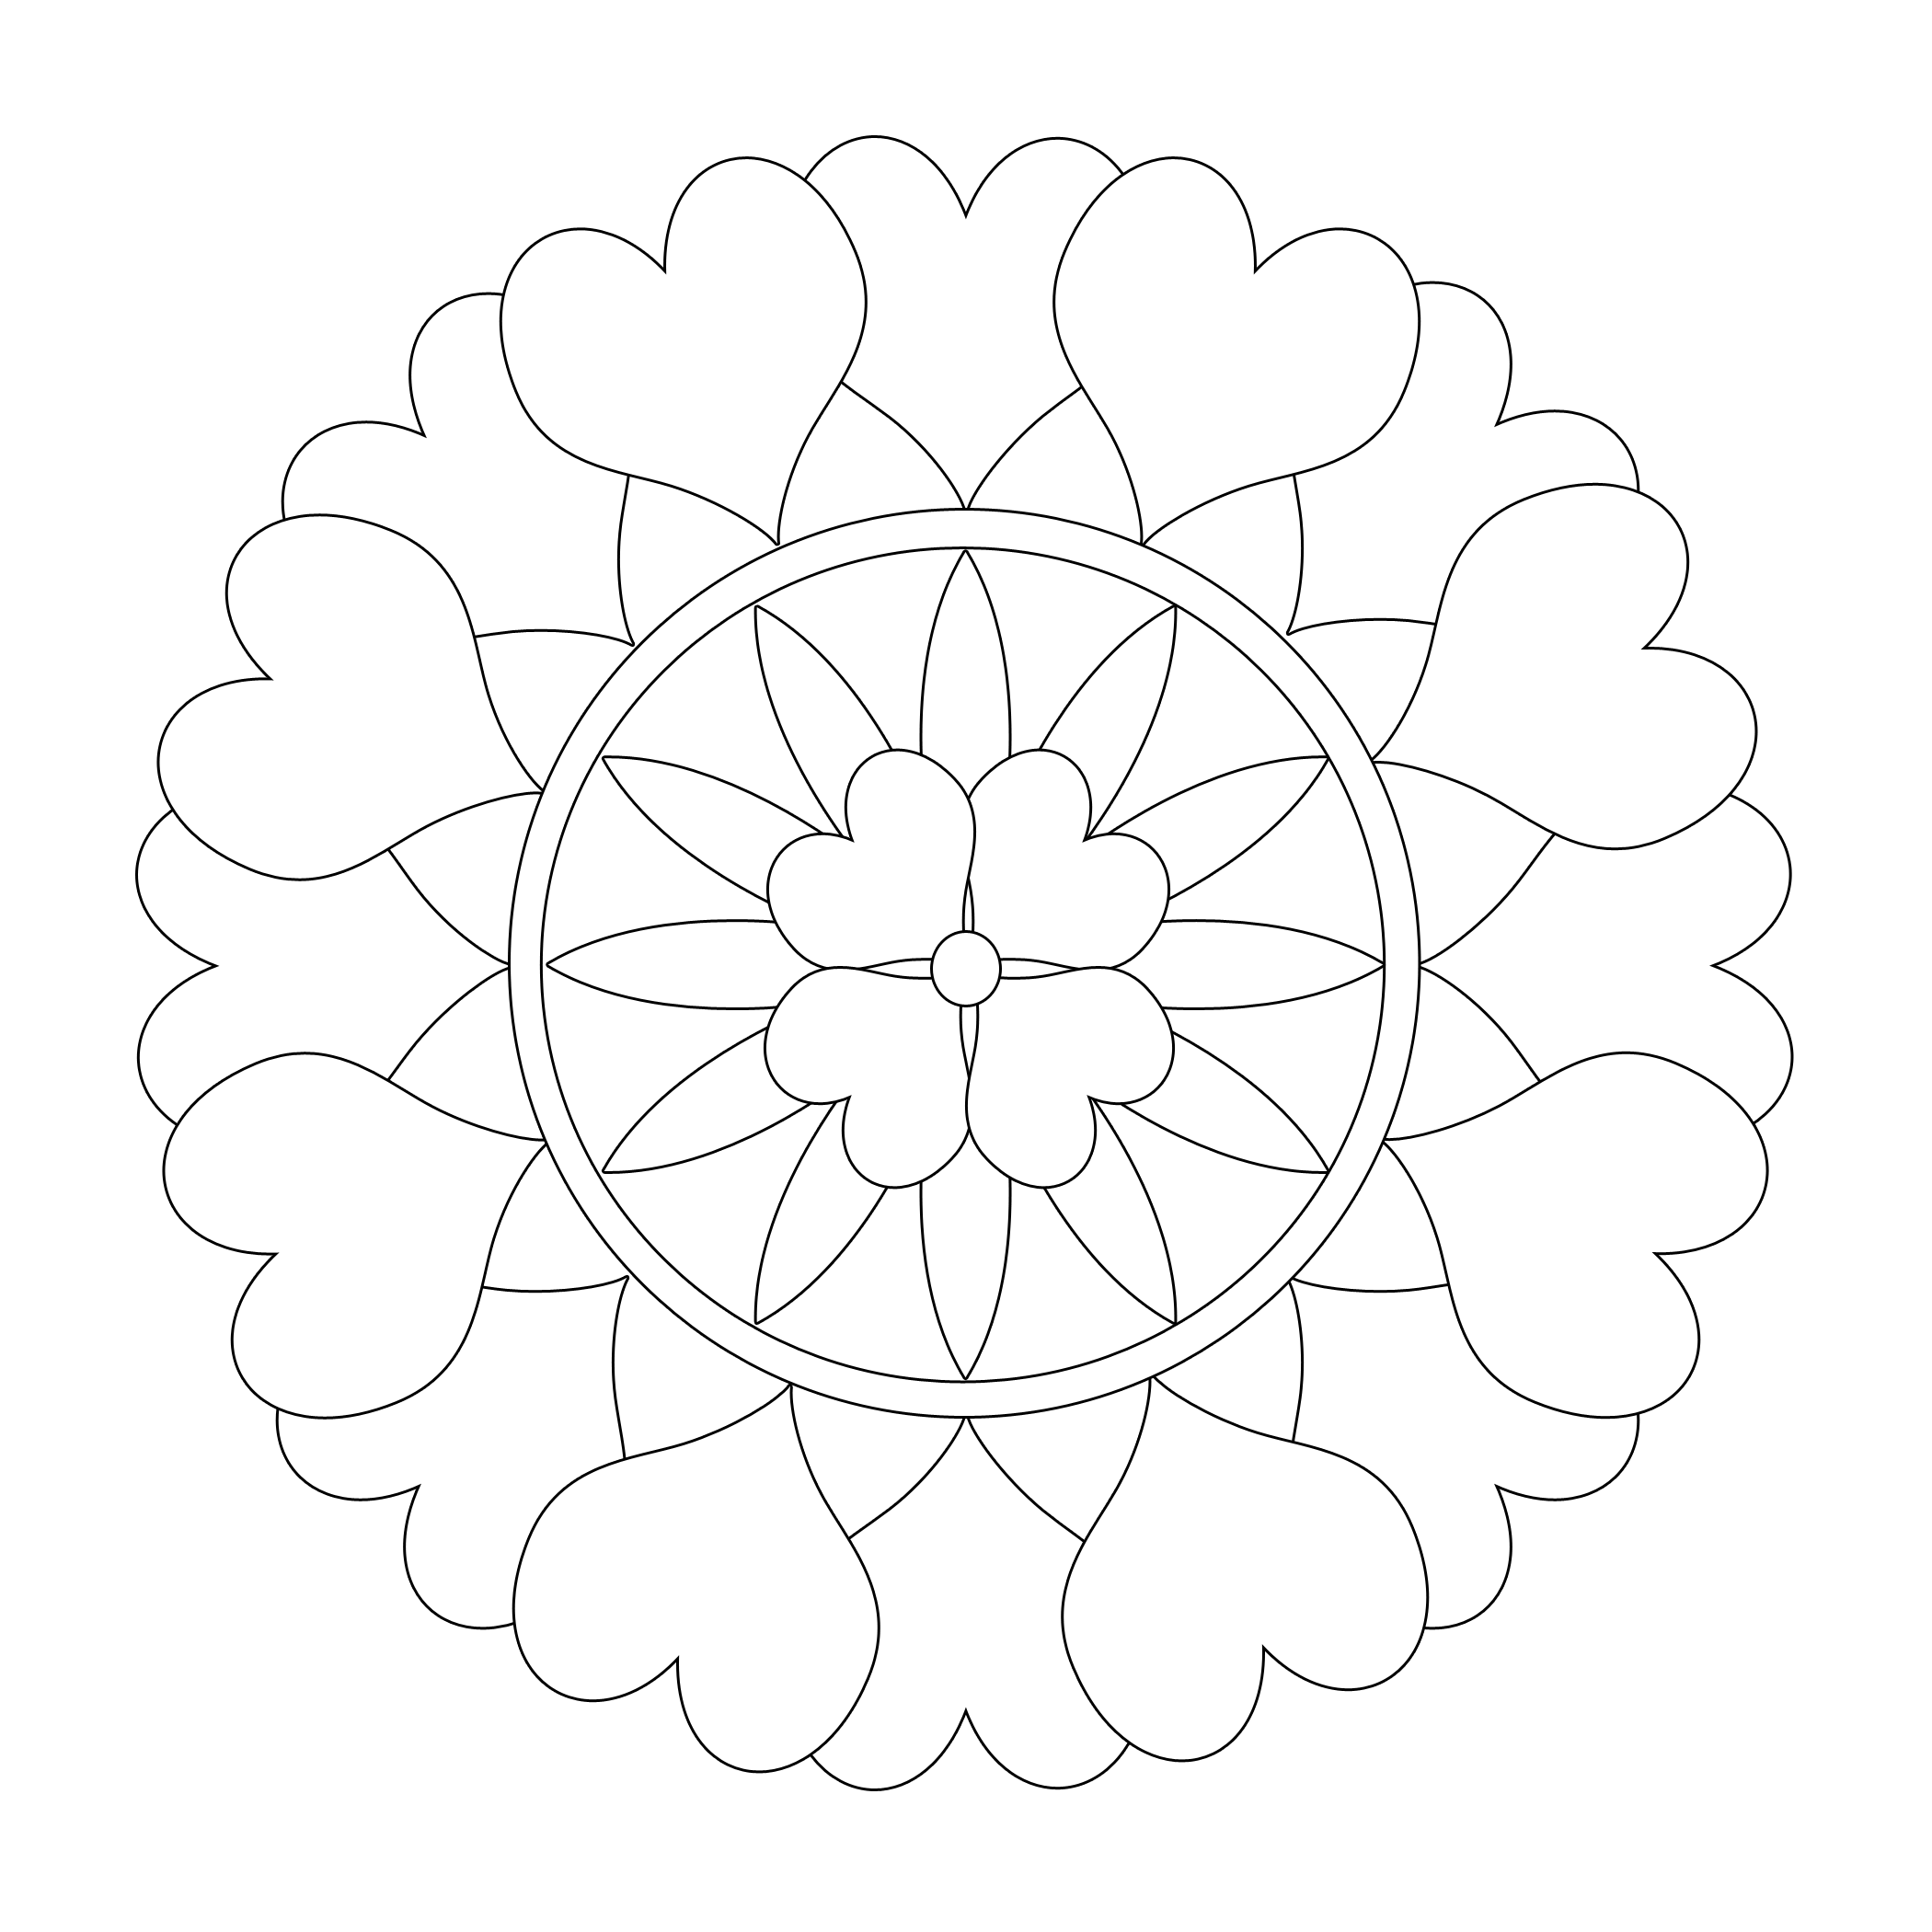 free printable mandalas to color for adults free mandala for to print 14 malas adult coloring printable for color mandalas to free adults